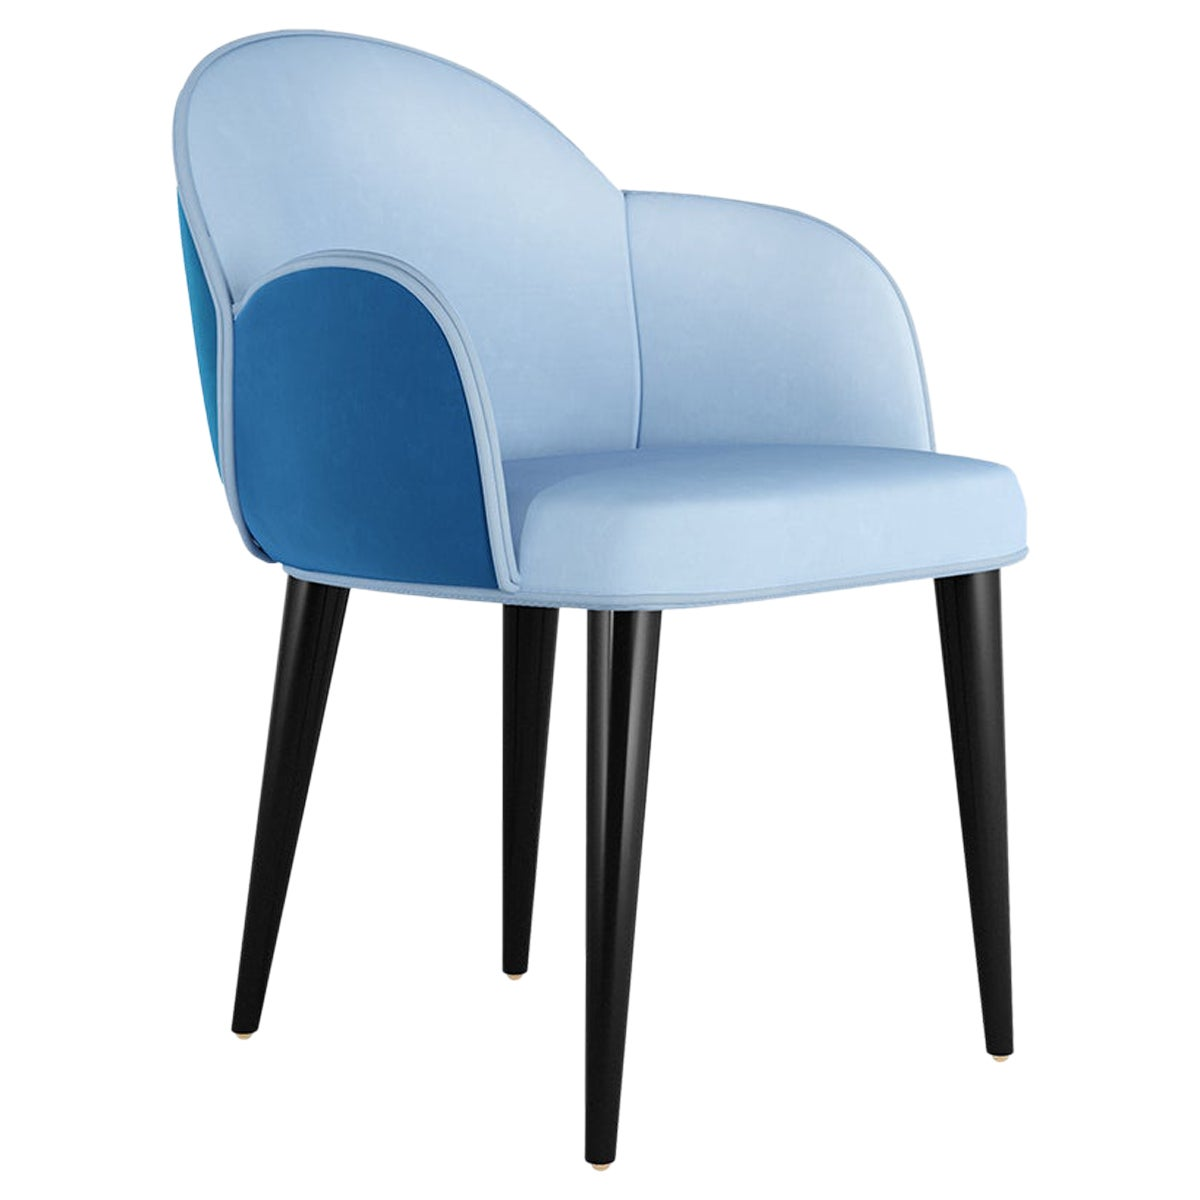 Contemporary Blue Velvet Dining Chair with Black Legs